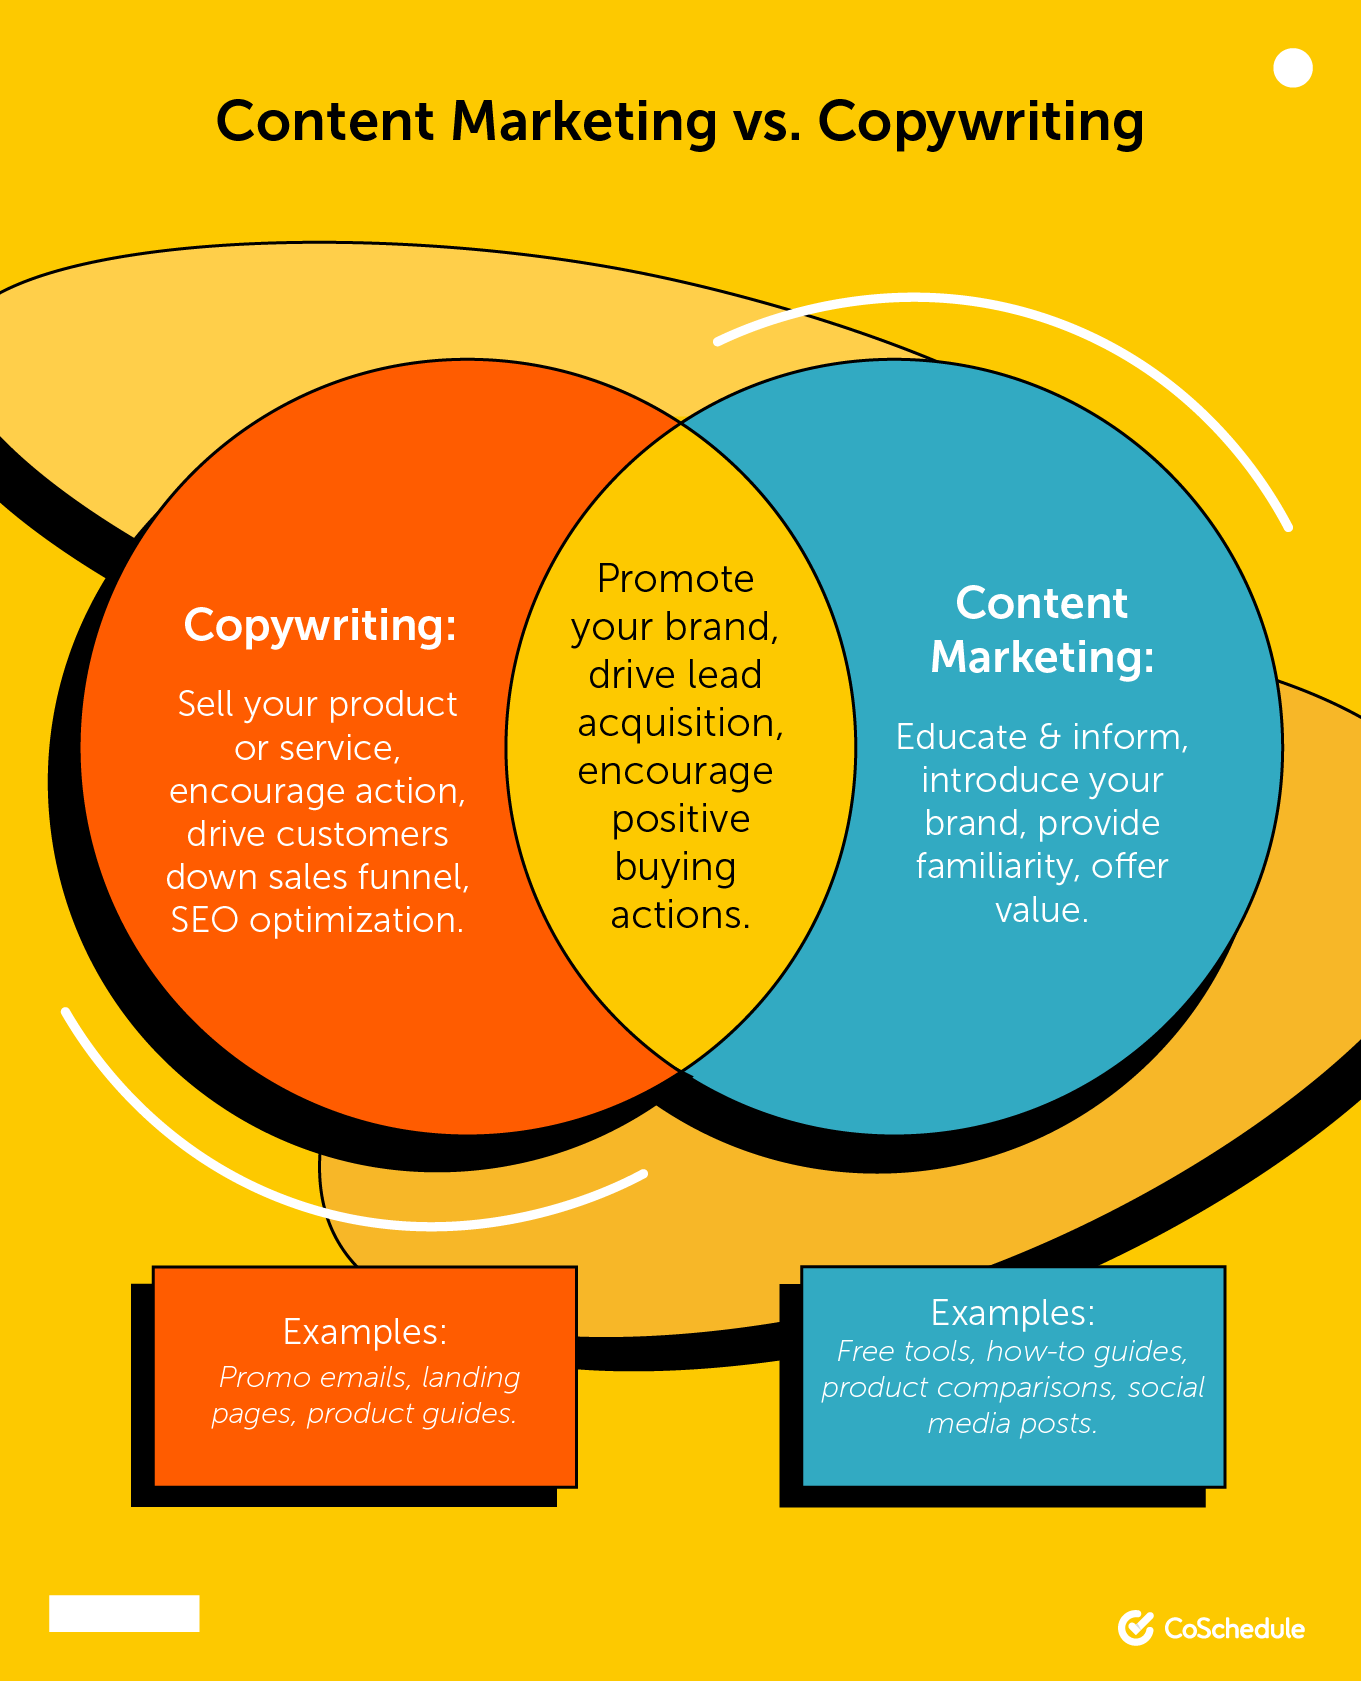 Content marketing compared to copywriting